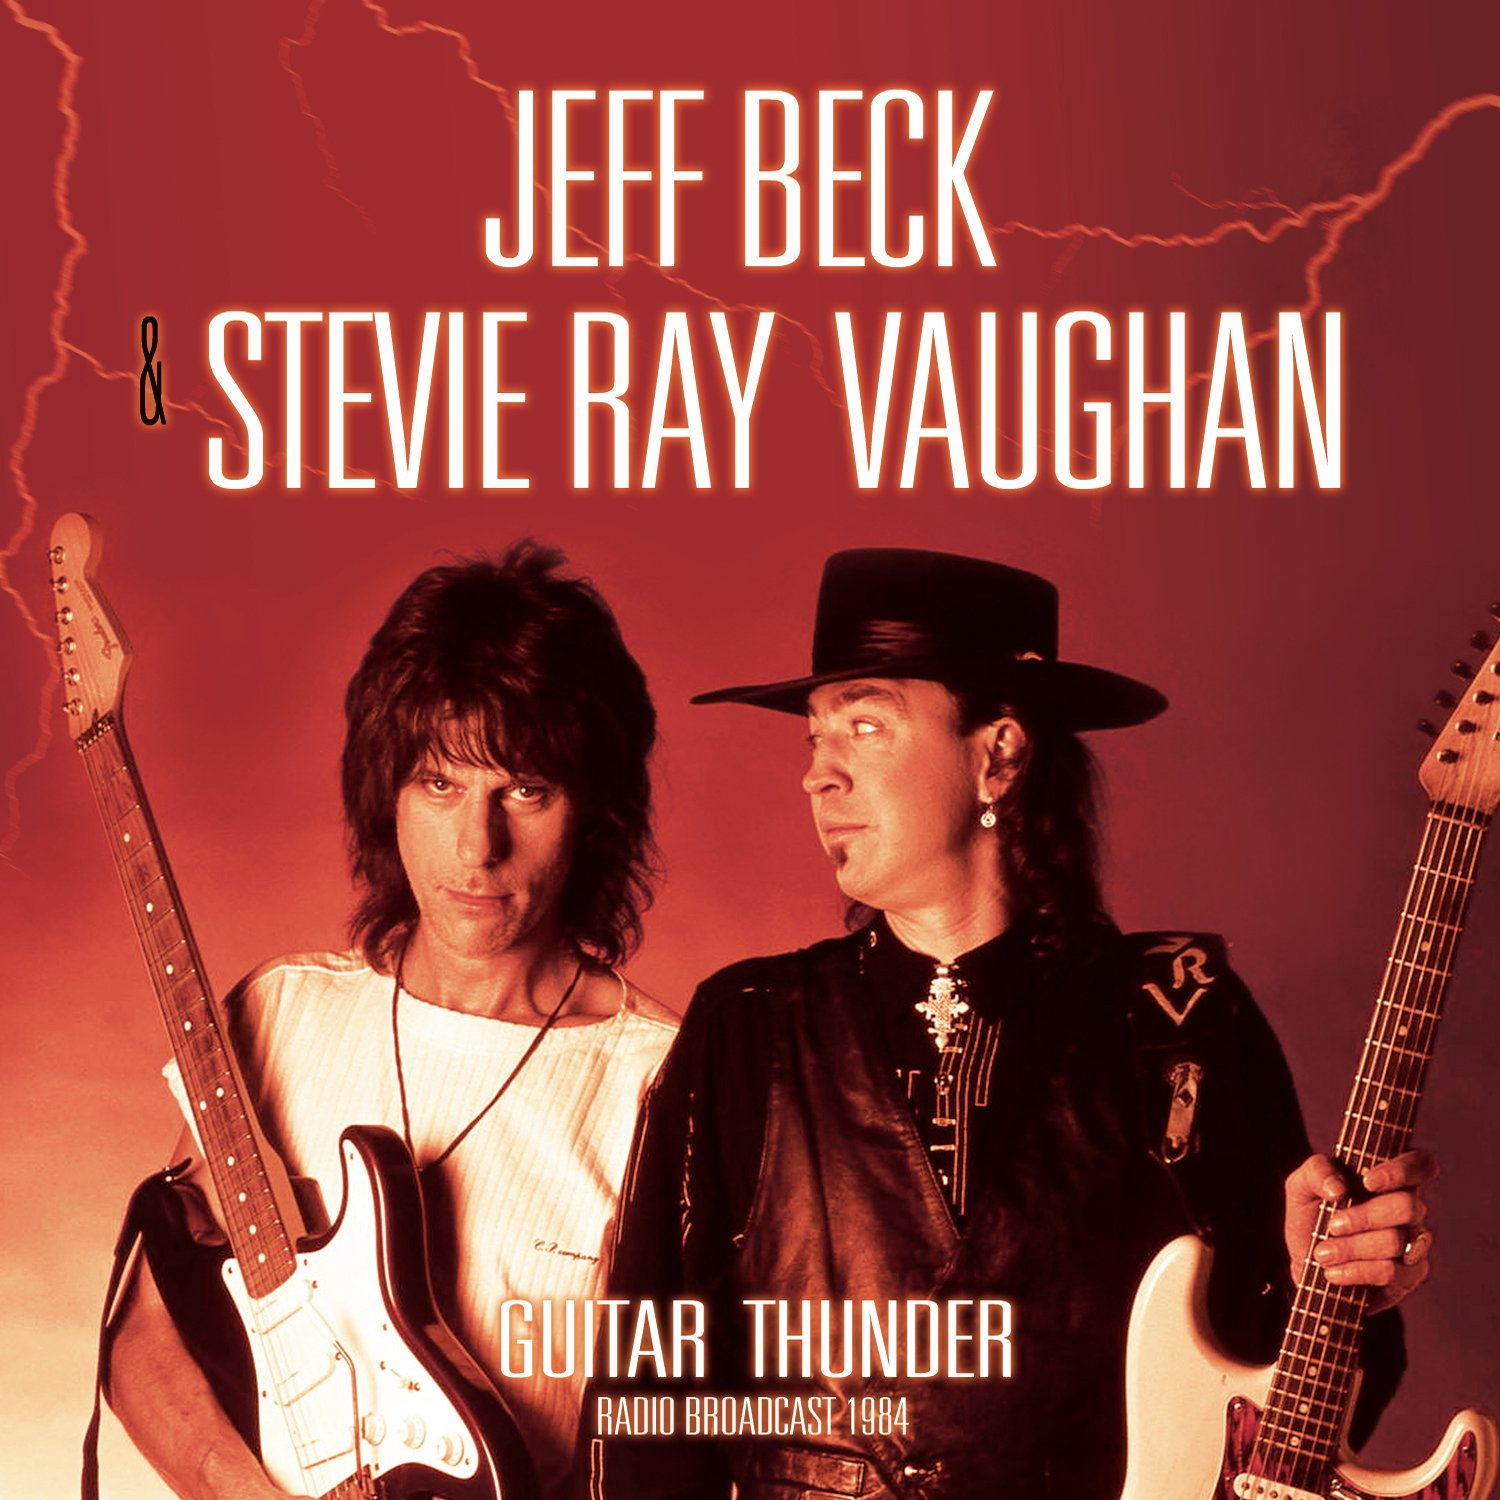 My Collections: Jeff Beck & Stevie Ray Vaughan